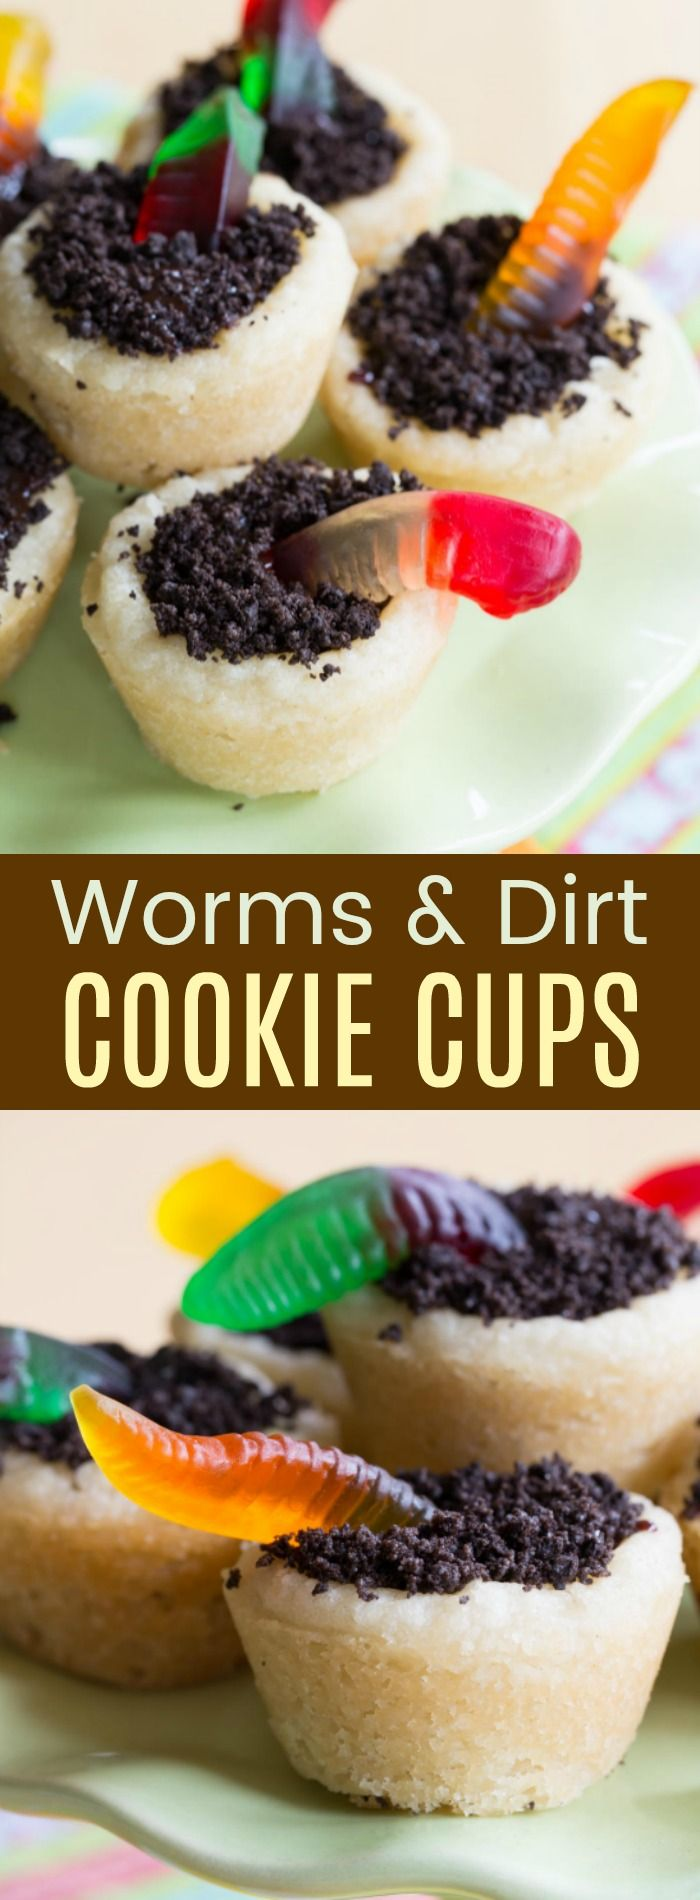 Worms and Dirt Cookie Cups - a kid-friendly sugar cookie cup recipe with only five ingredients. Filled with chocolate ganache, Oreo dirt, and gummy worms. A perfect dessert to celebrate Halloween, springtime, or just for fun.